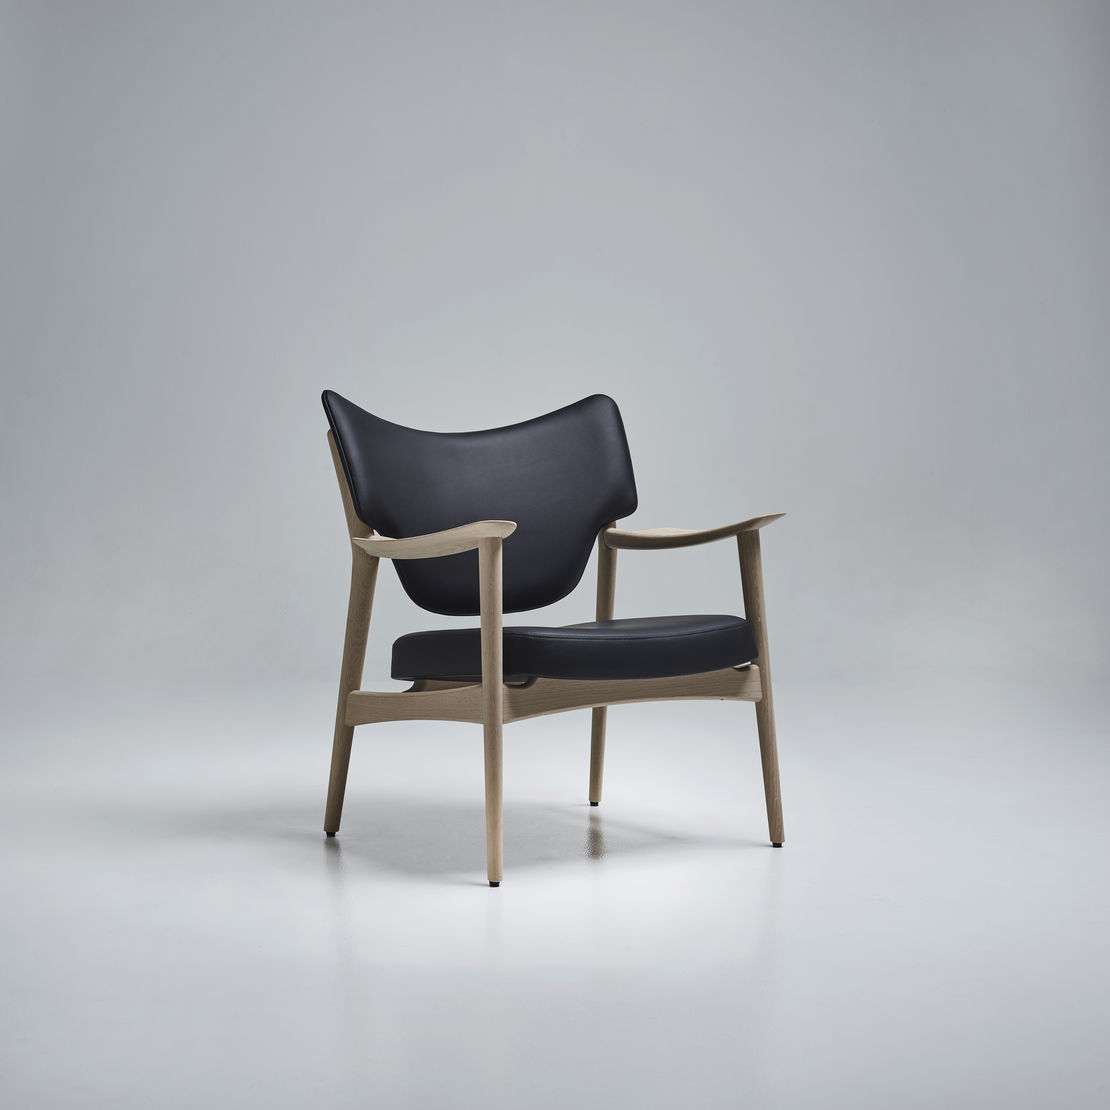 Eikund | Veng Lounge Chair | Available exclusively from Stylecraft